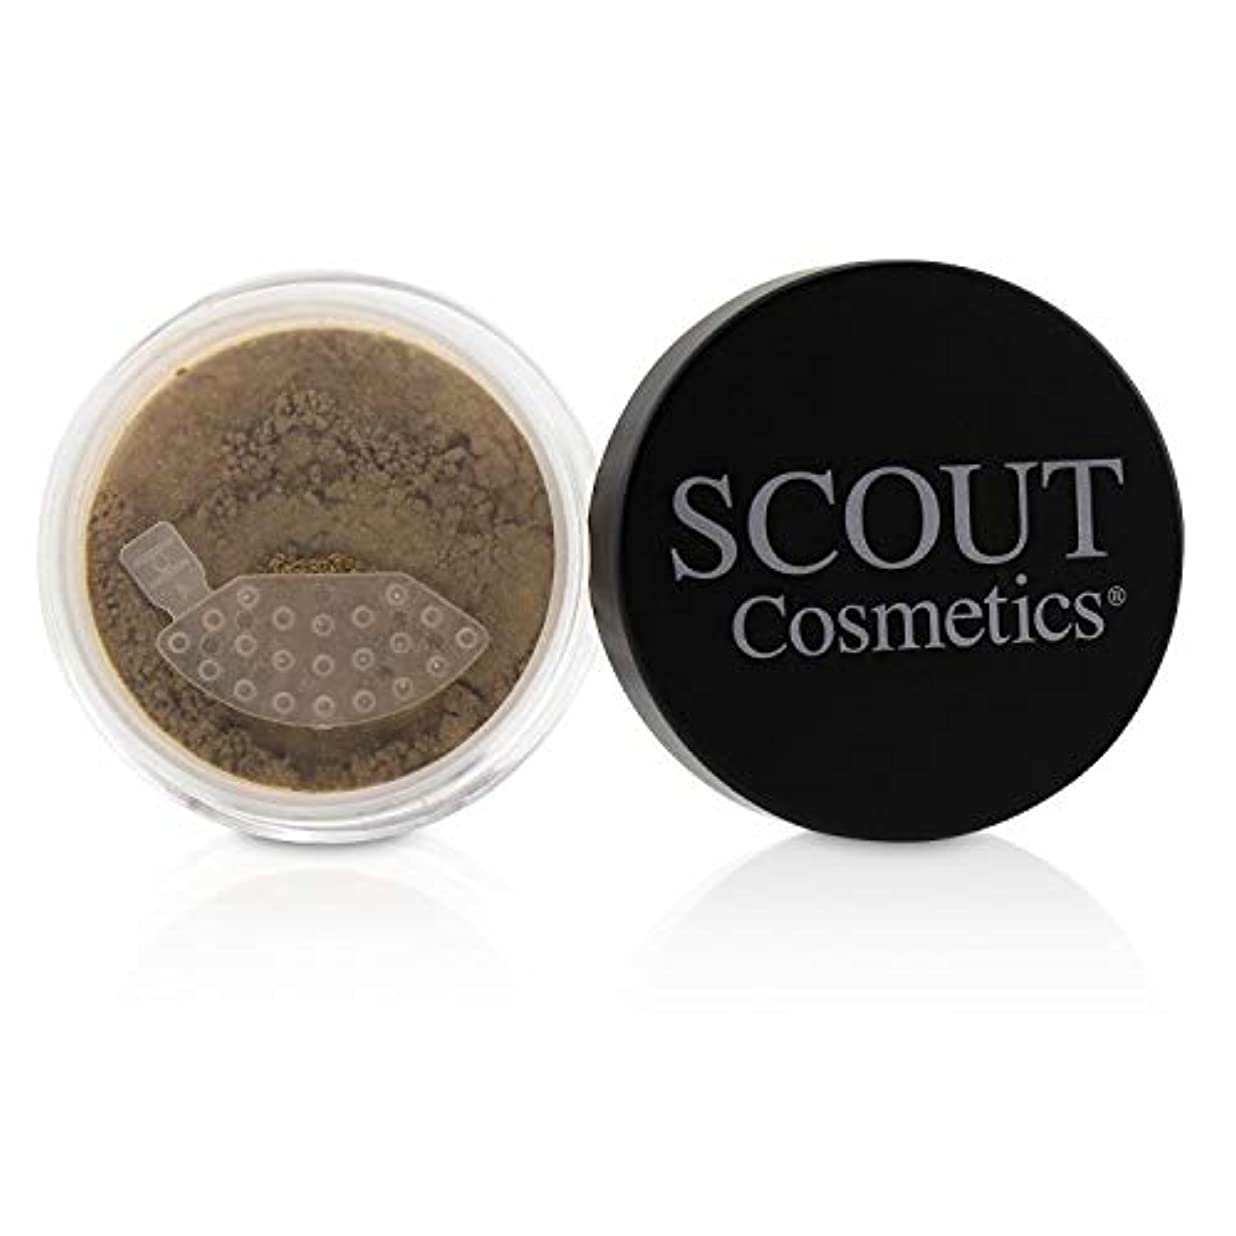 持っている望遠鏡仲間SCOUT Cosmetics Mineral Powder Foundation SPF 20 - # Almond 8g/0.28oz並行輸入品